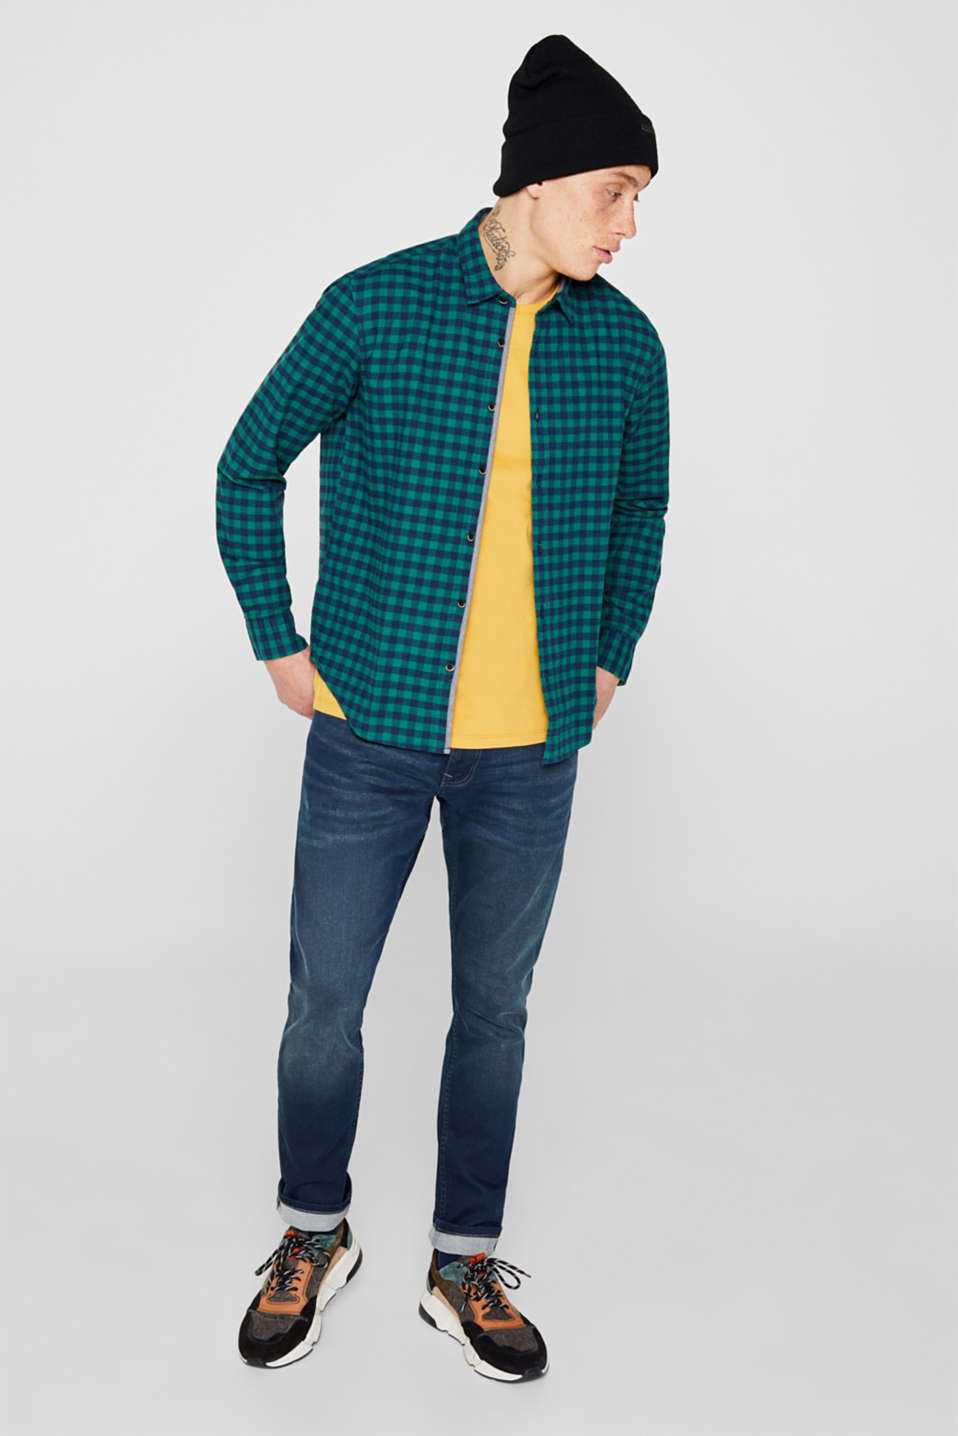 Flannel shirt with checks, made of stretch cotton, DARK GREEN, detail image number 1